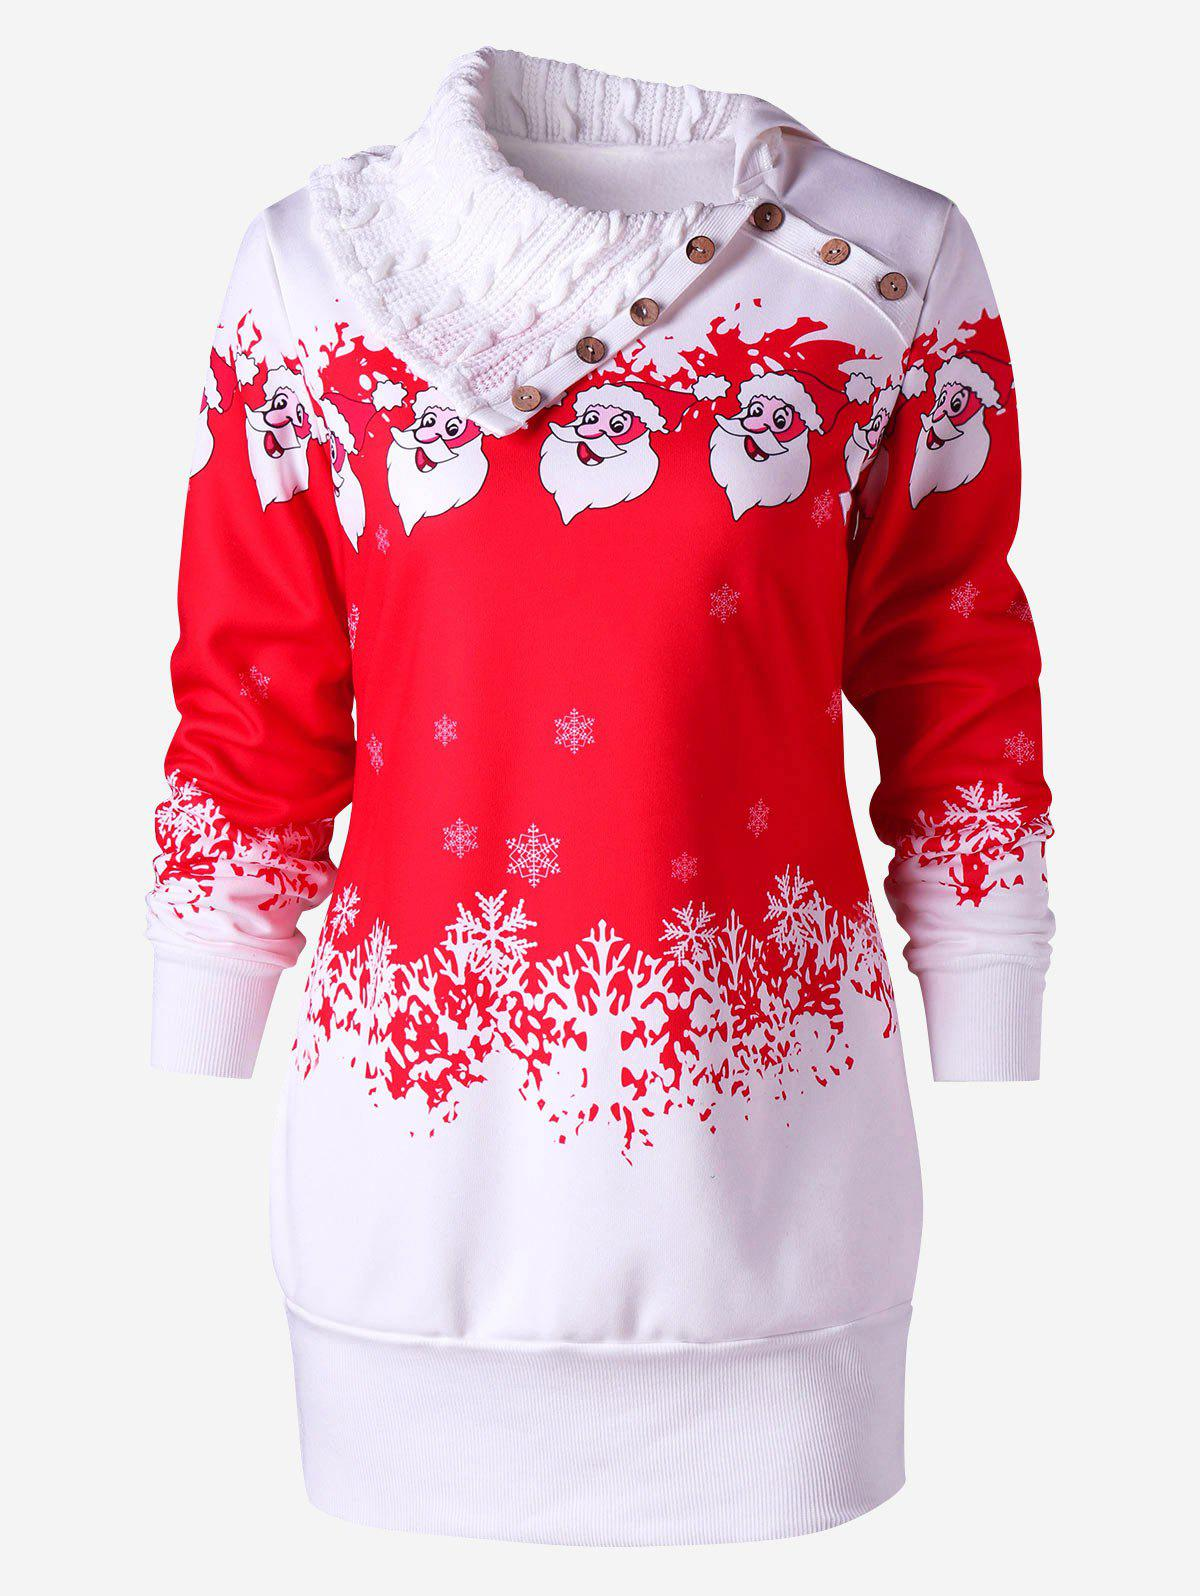 Robe Sweat-shirt Tunique en Molleton Imprimé Père Noël - Rouge M